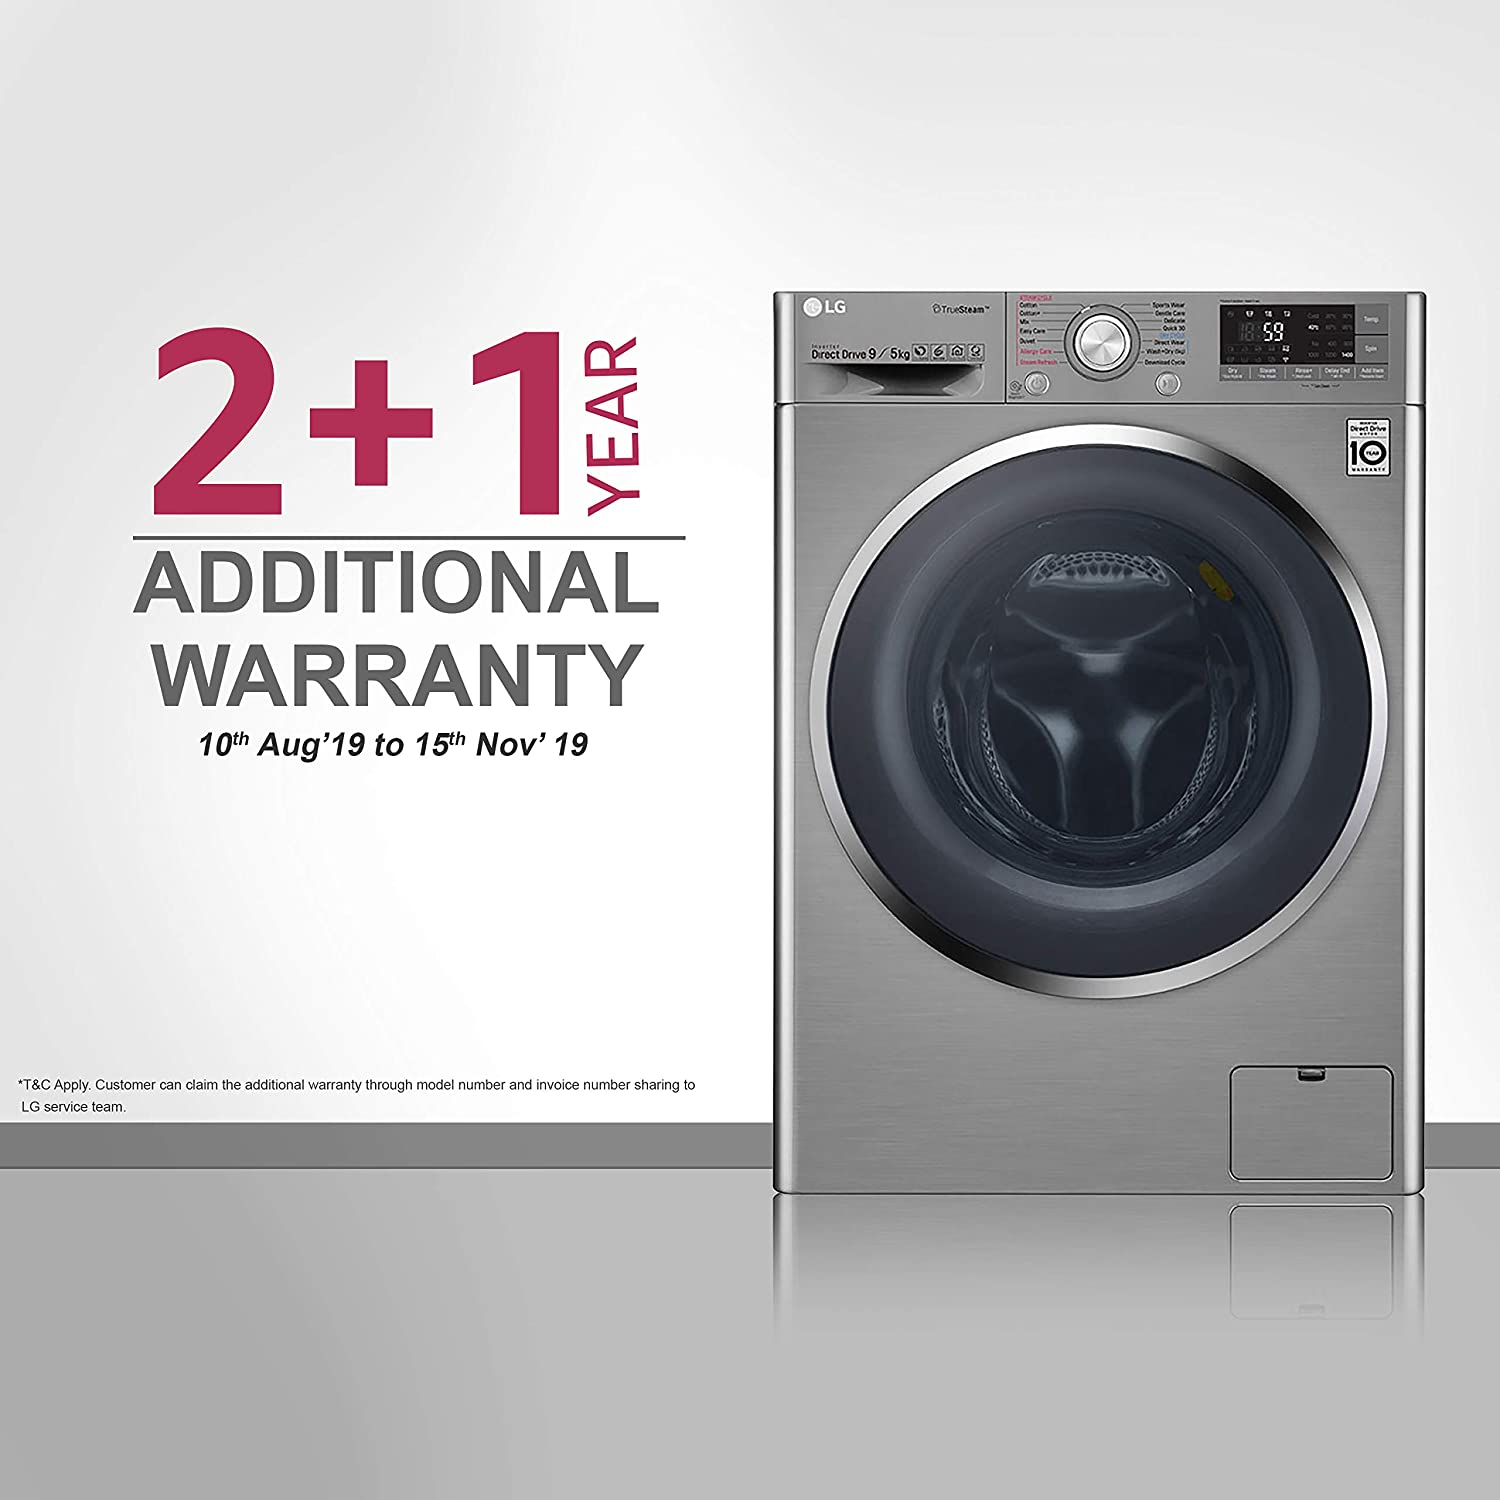 LG 9 kg Inverter Fully-Automatic Front Loading Washer Dryer  (F4J8VHP2SD AESPEIL, Luxury Silver, Inbuilt Heater)